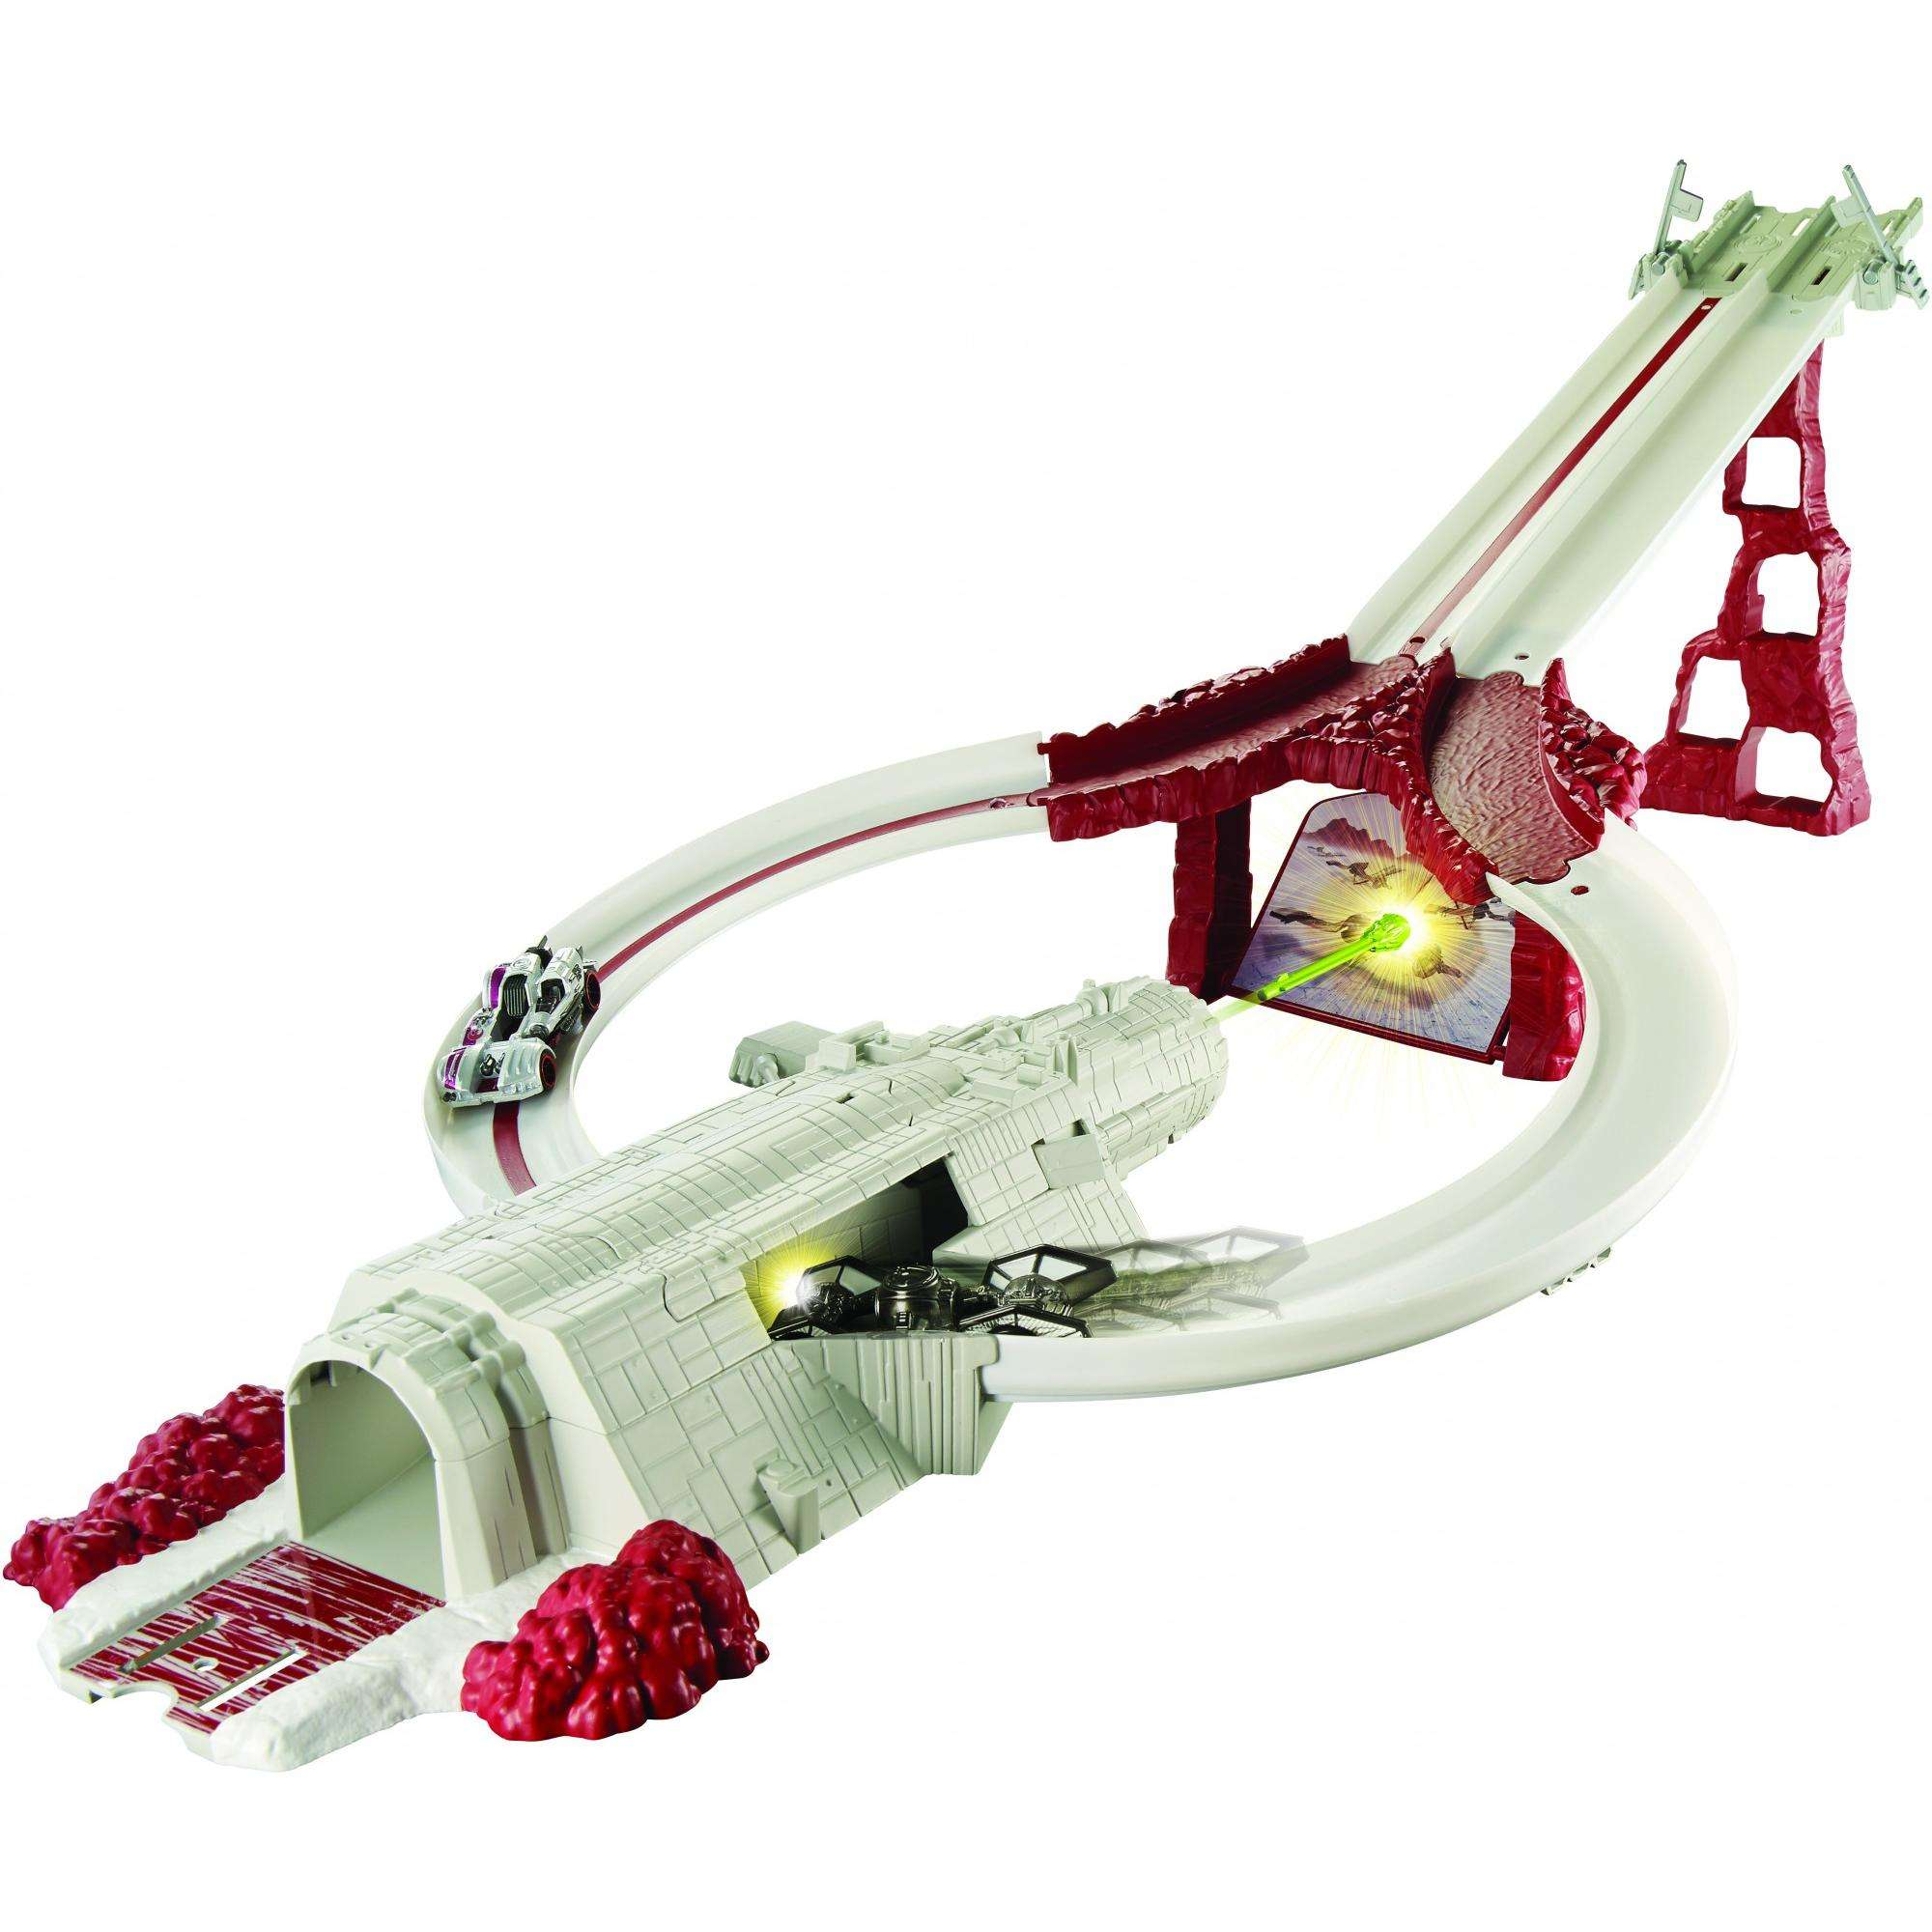 Hot Wheels Star Wars: The Last Jedi Crait Assault Raceway, Track Set